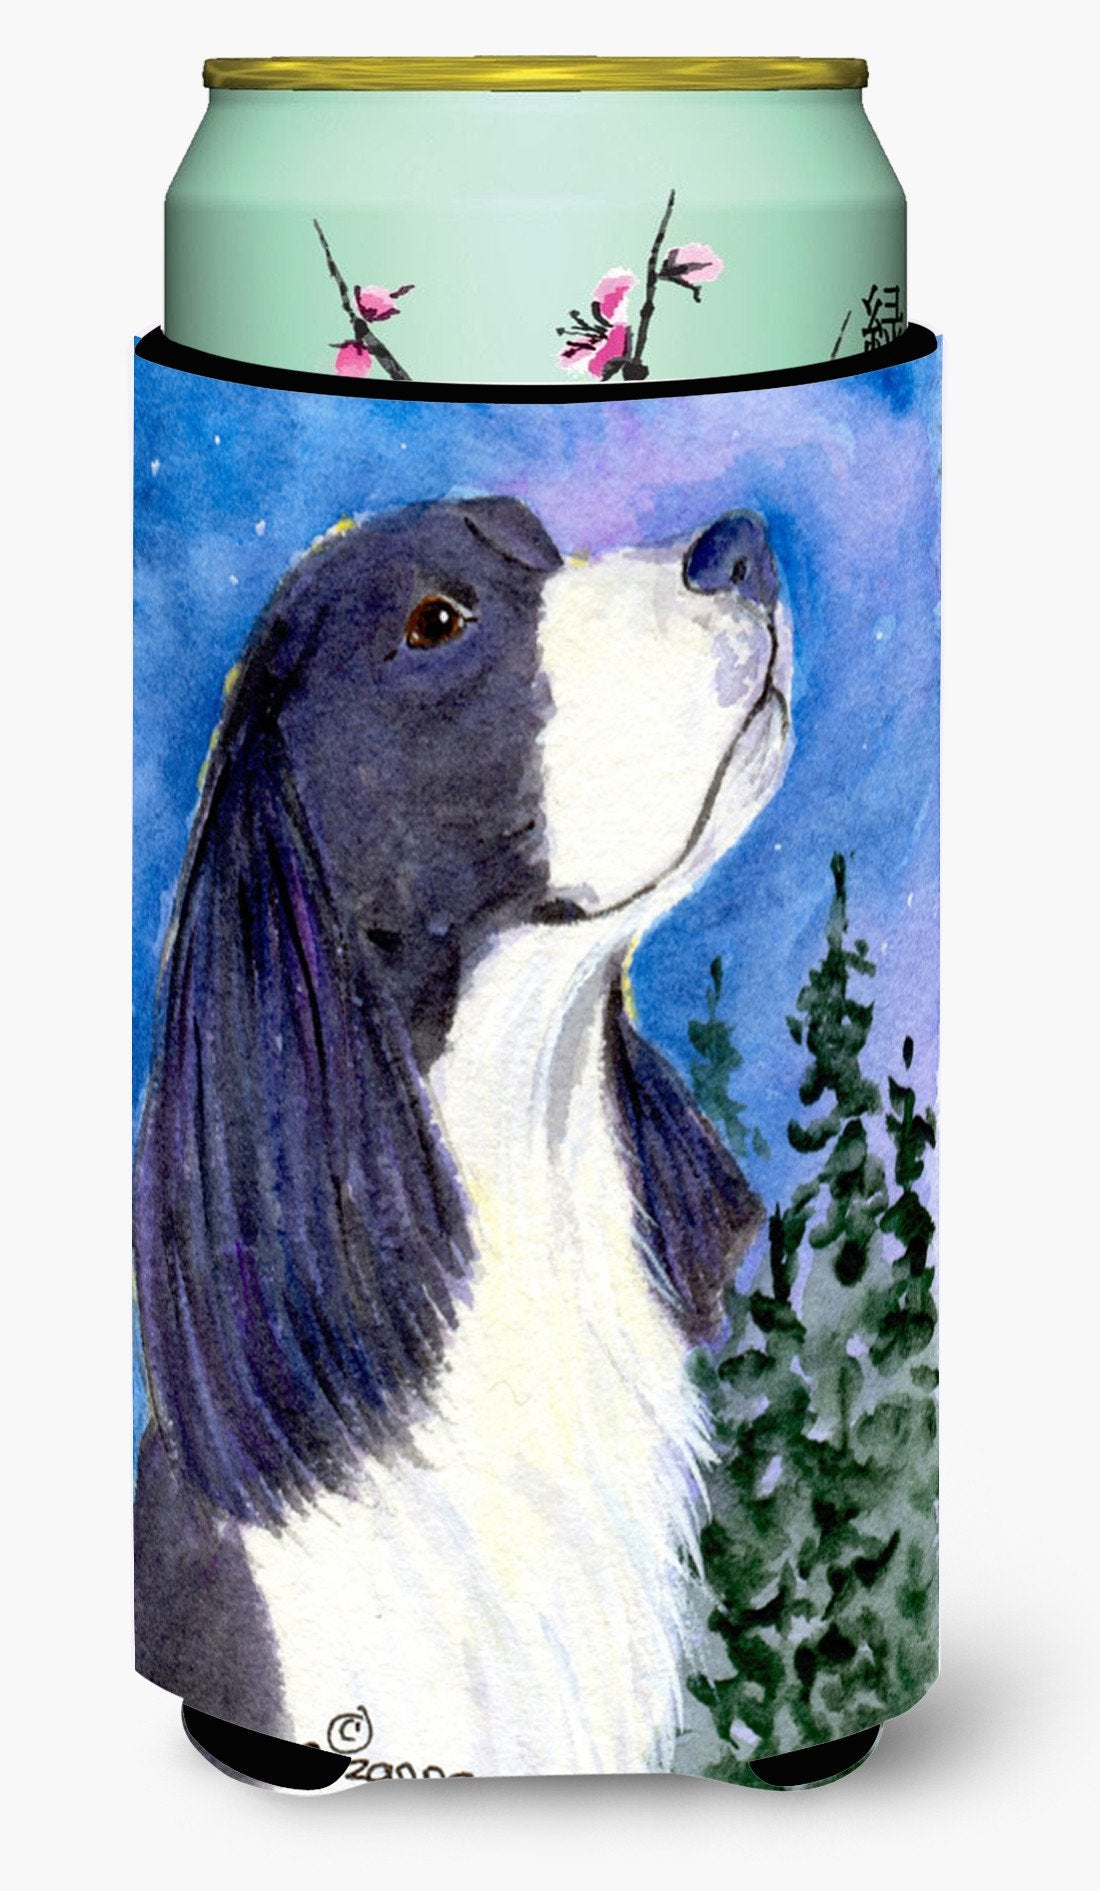 English Springer Spaniel  Tall Boy Beverage Insulator Beverage Insulator Hugger by Caroline's Treasures